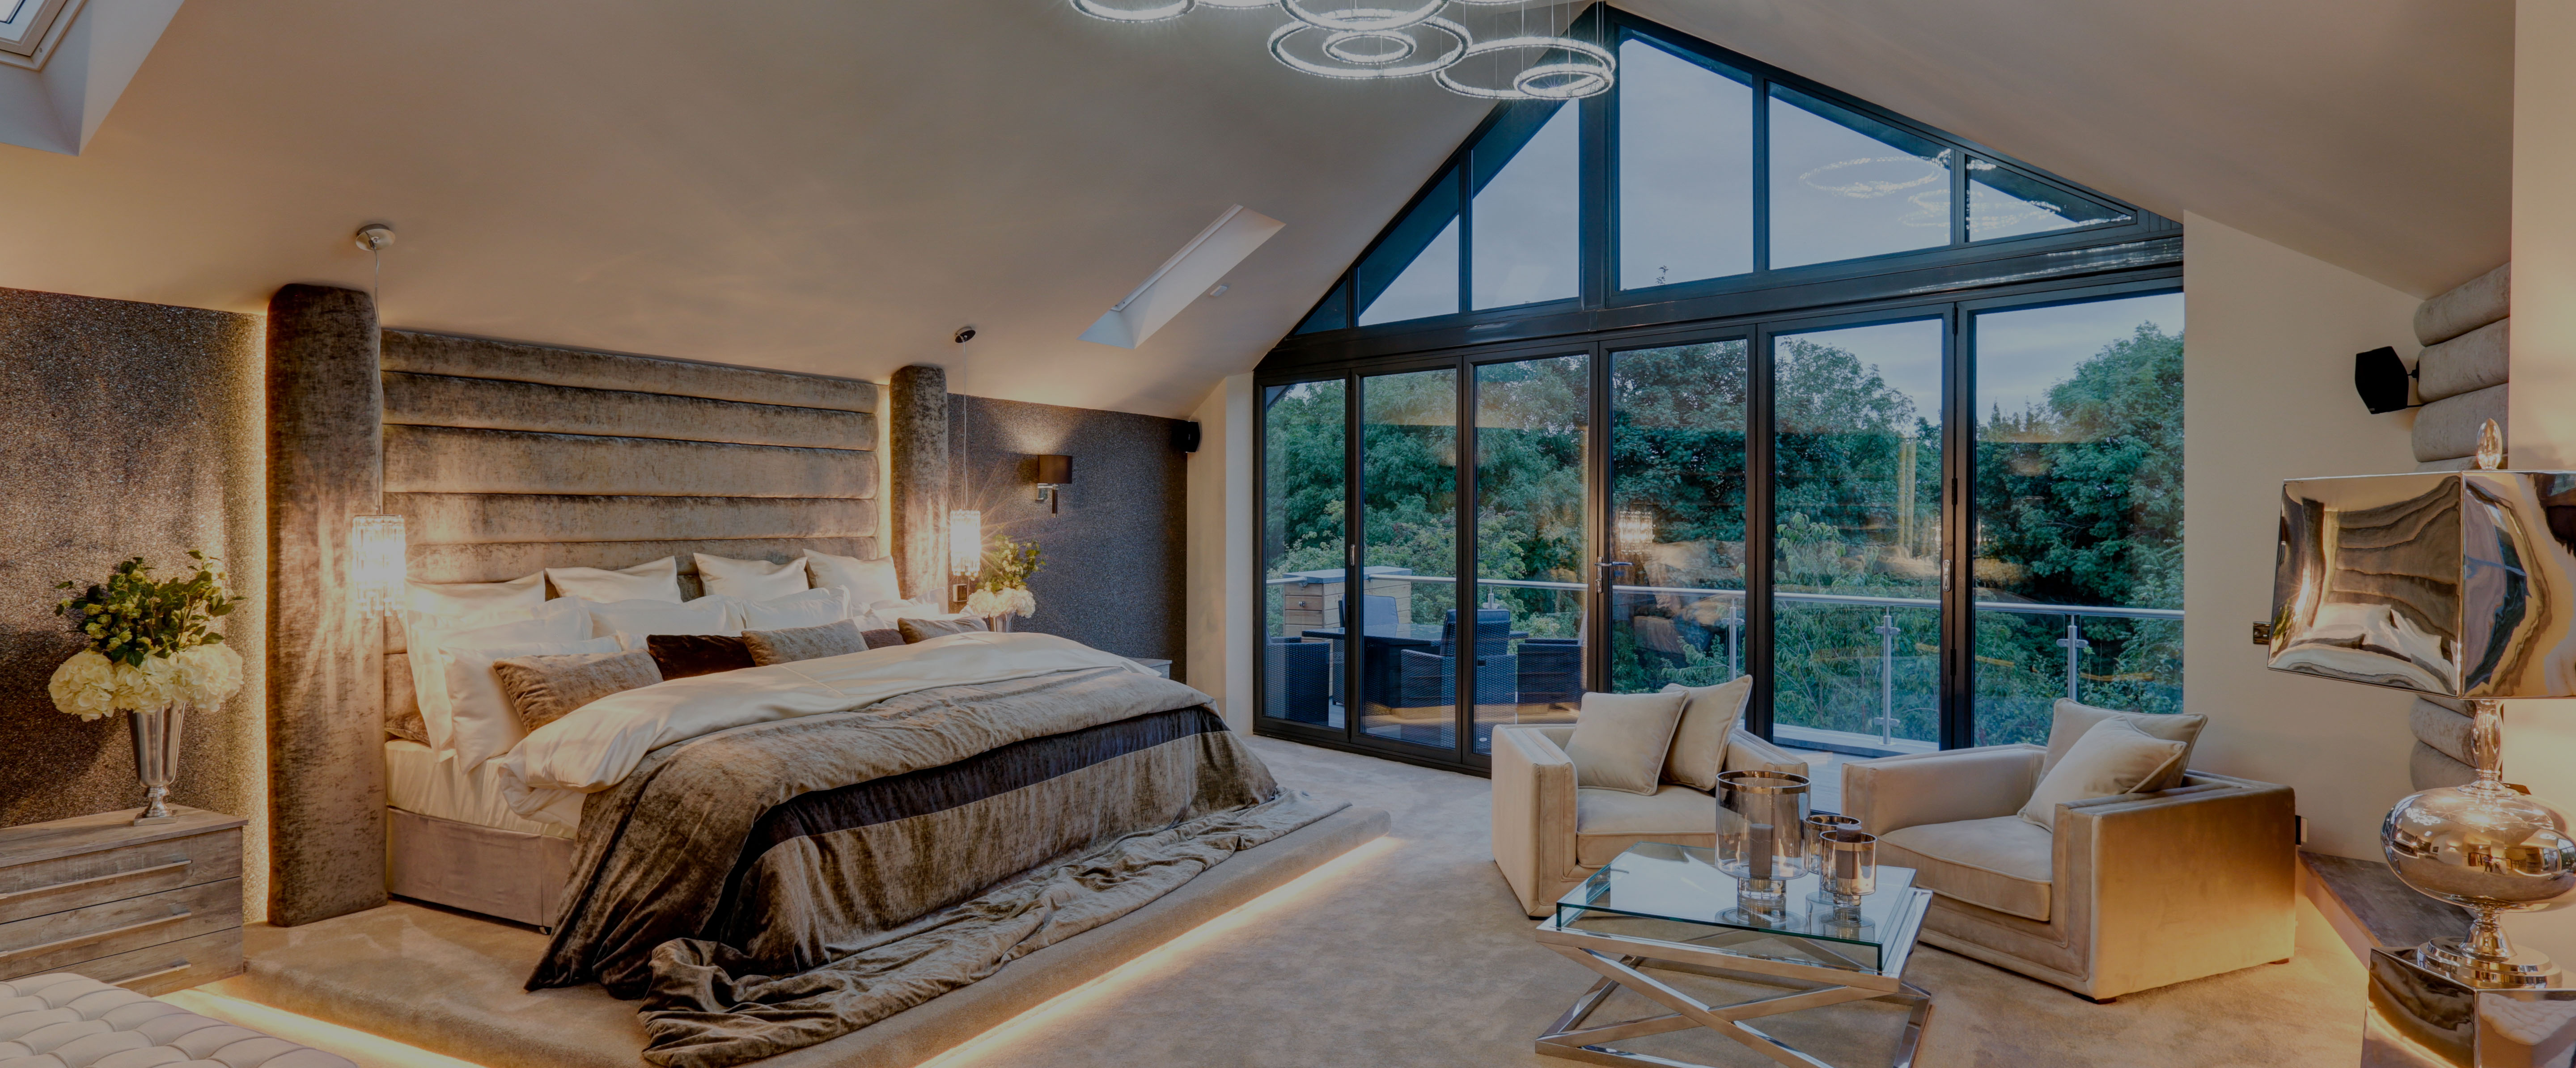 Bedroom suite with bi-fold doors, glass pitched roof and balcony